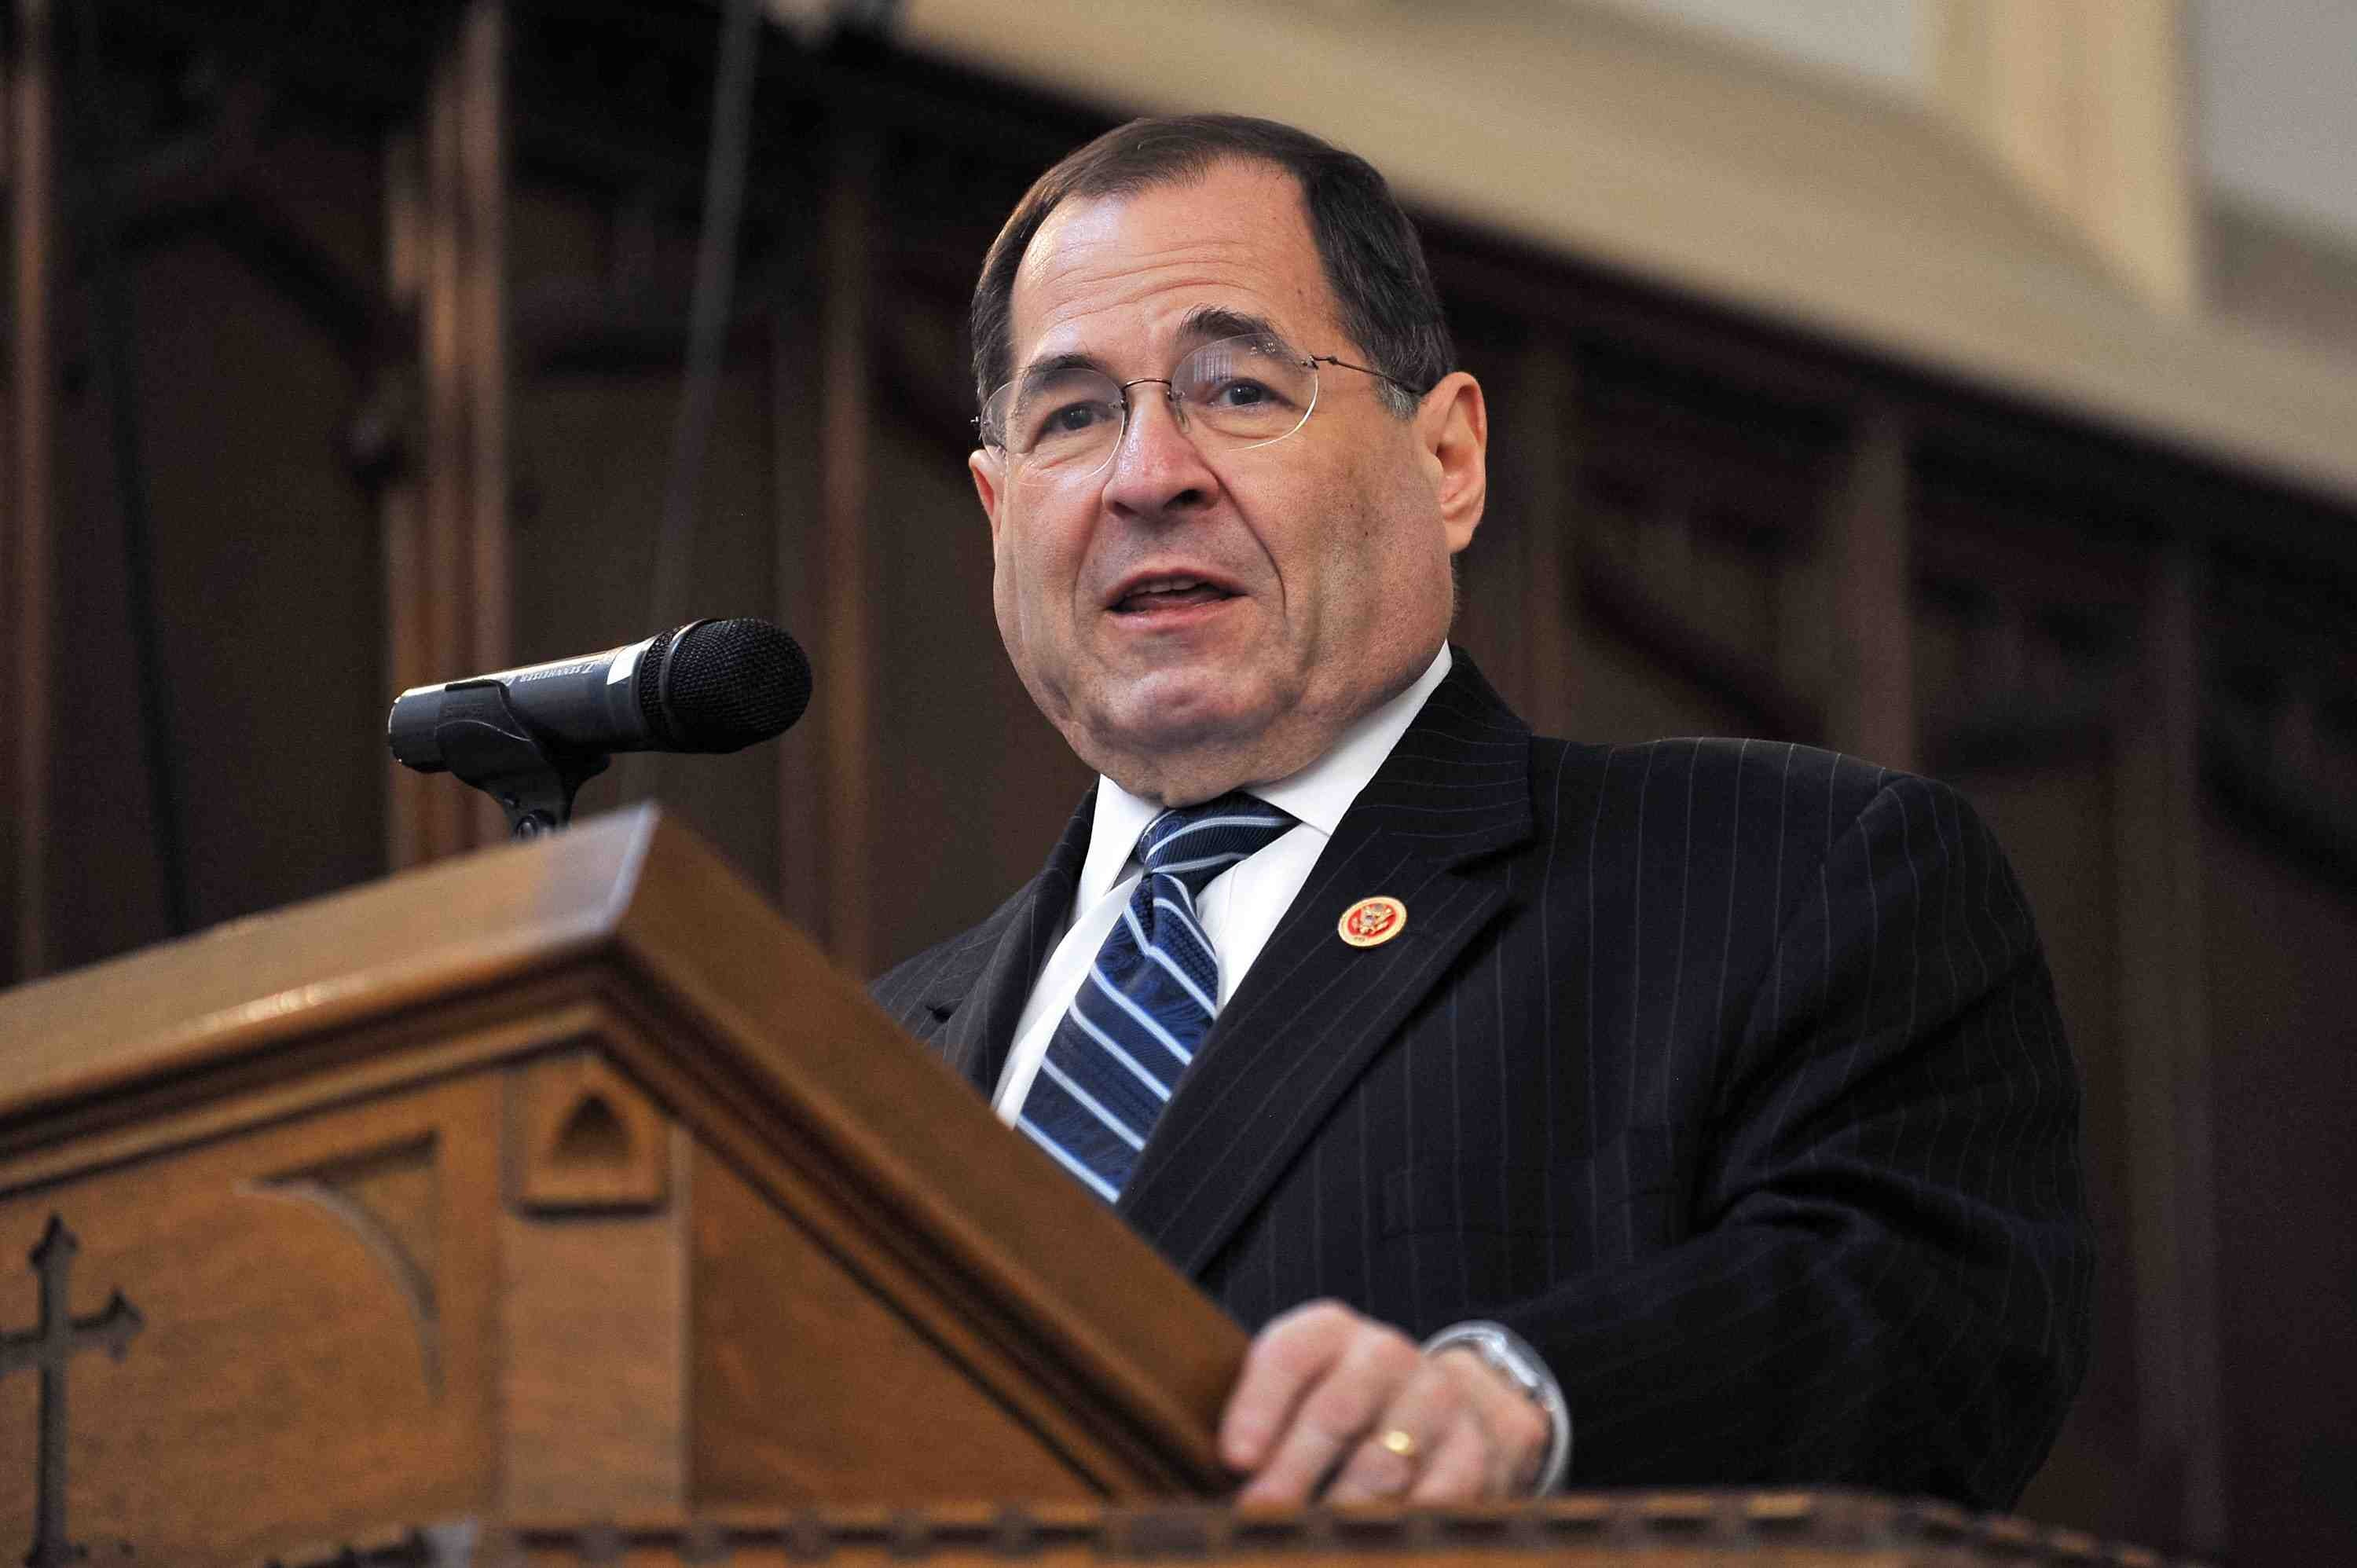 """Rep. Jerrold Nadler, an attorney and member of the House Judiciary committee, who said he was """"startled"""" to learn that NSA analysts could eavesdrop on domestic calls without court authorization."""